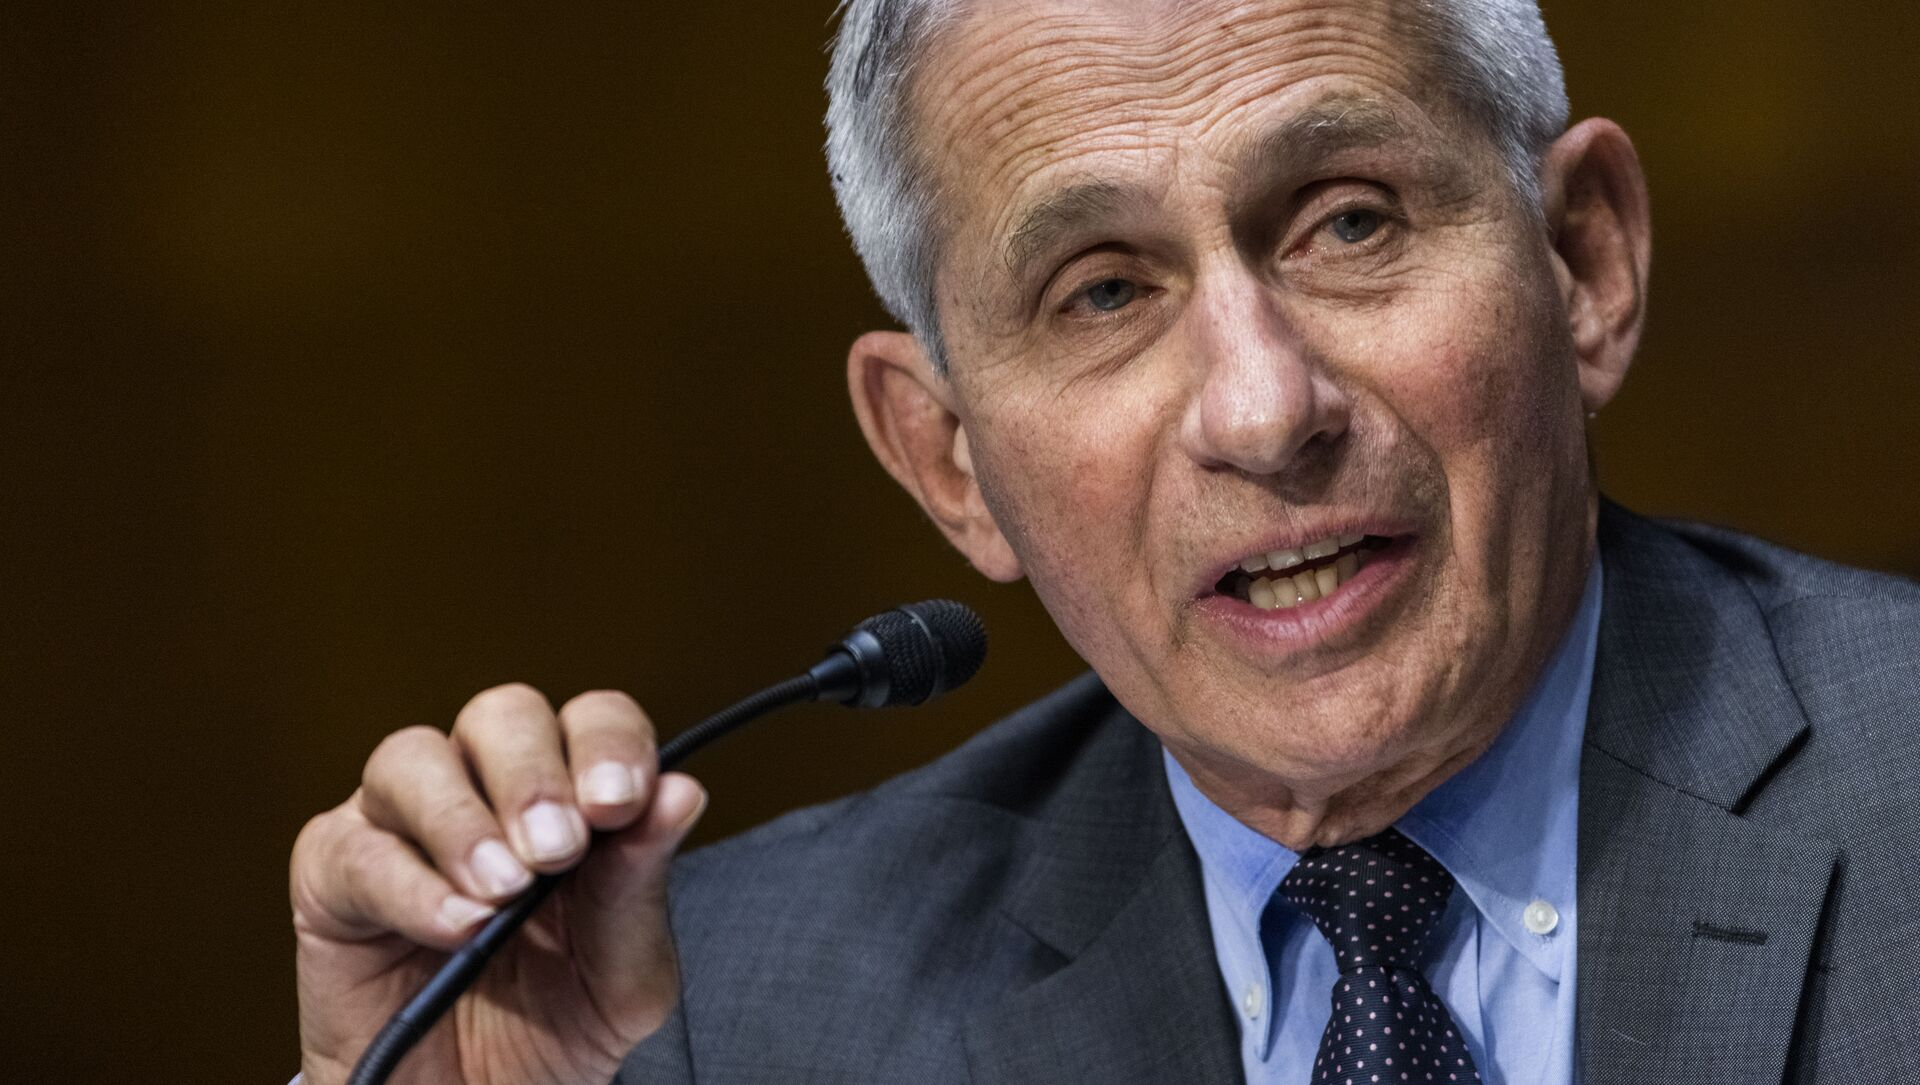 In this May 11, 2021, file photo, Dr. Anthony Fauci, director of the National Institute of Allergy and Infectious Diseases, speaks during hearing on Capitol Hill in Washington - Sputnik International, 1920, 26.08.2021